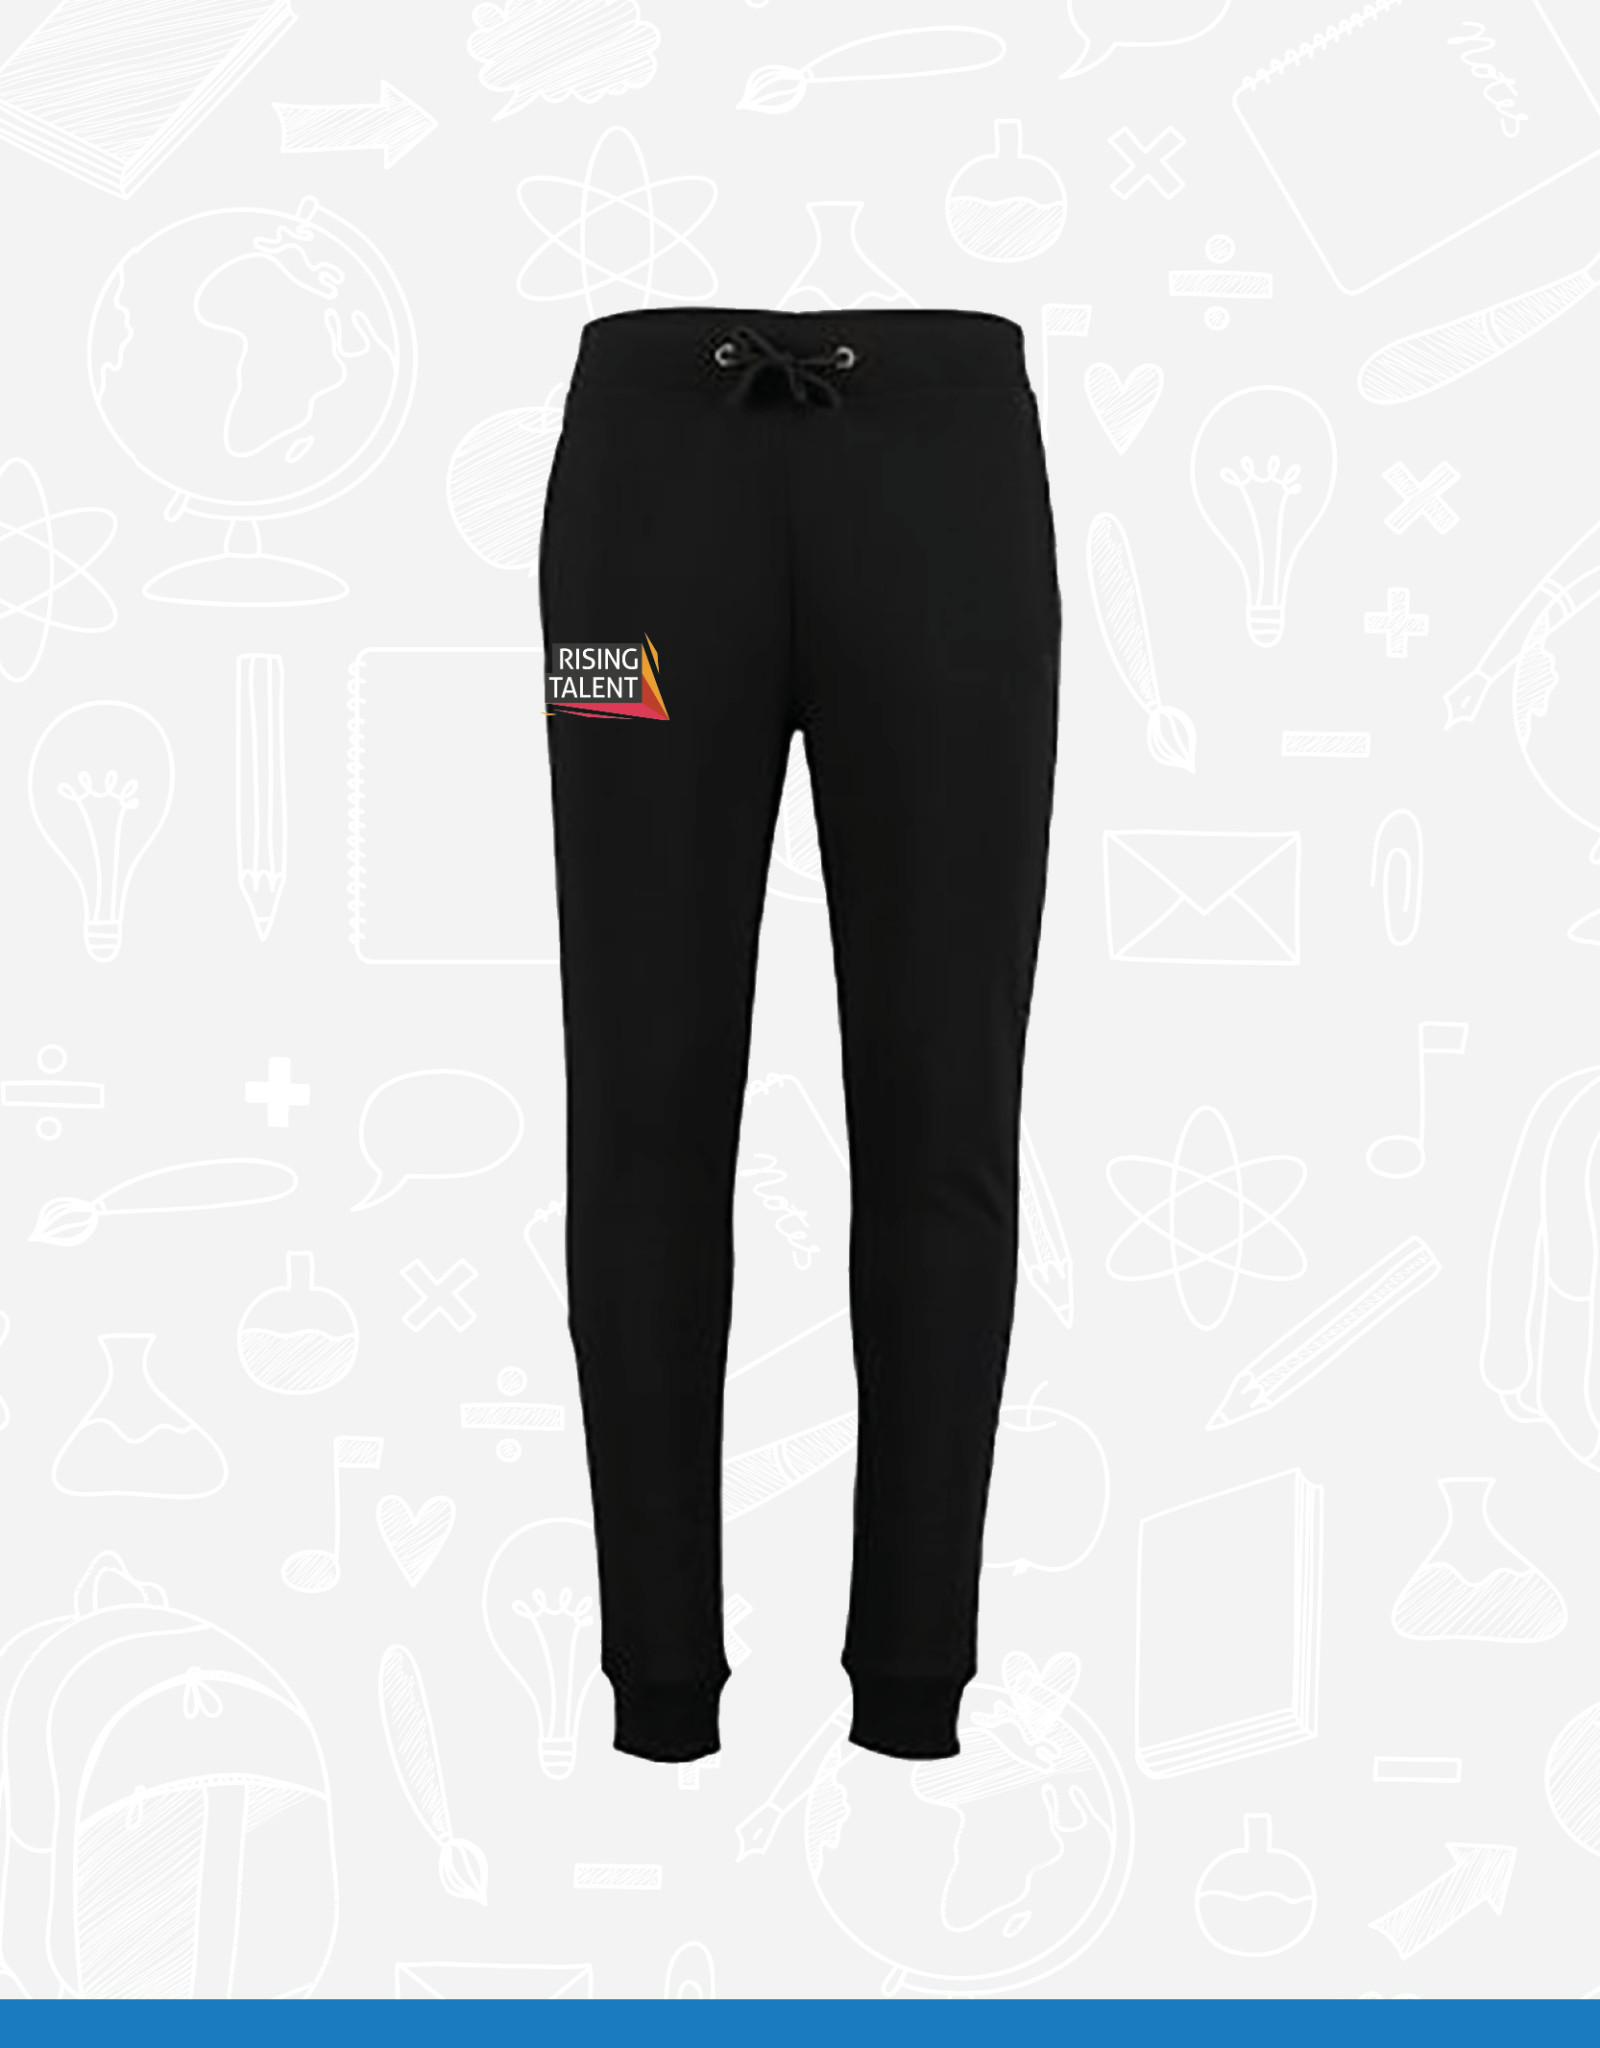 KK Rising Talent Slim Fit Sweatpants (K933)